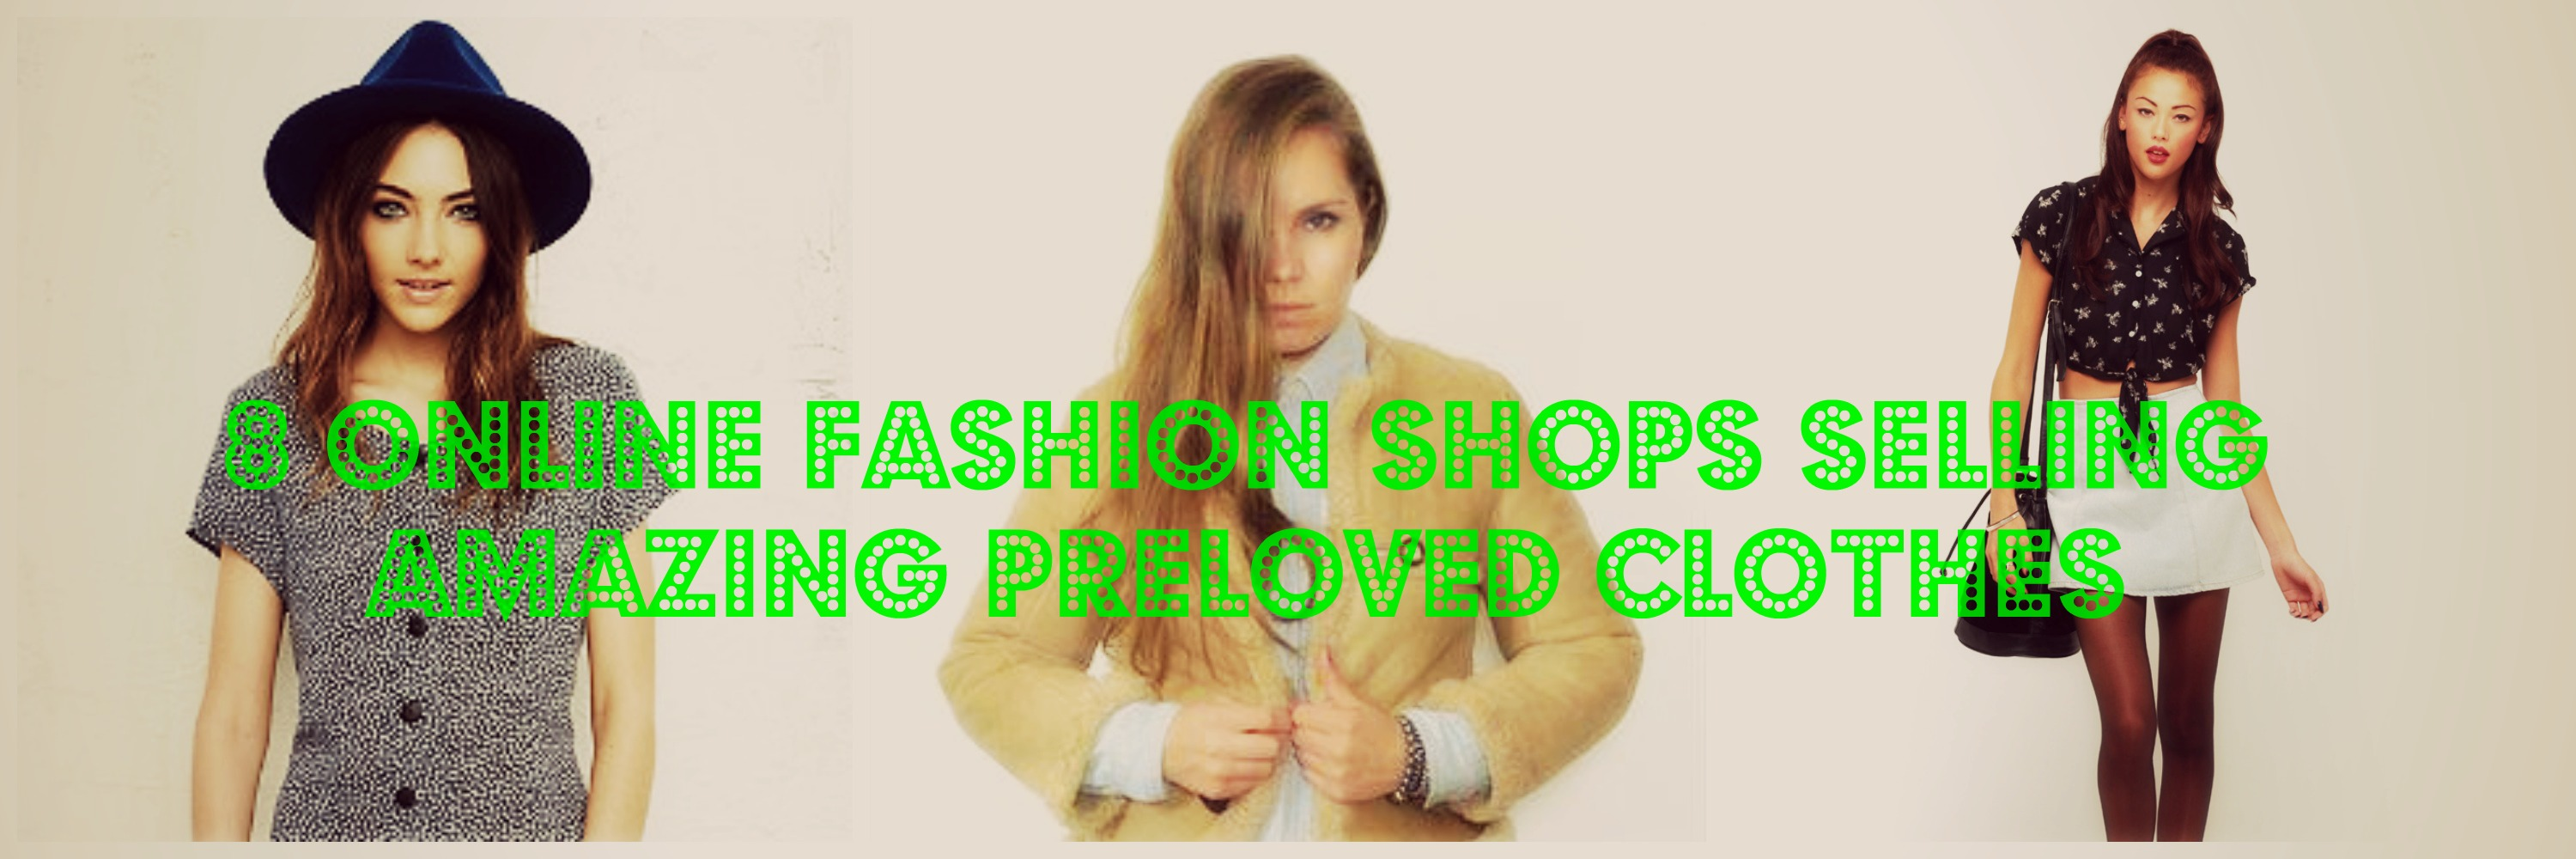 Online fashion shops